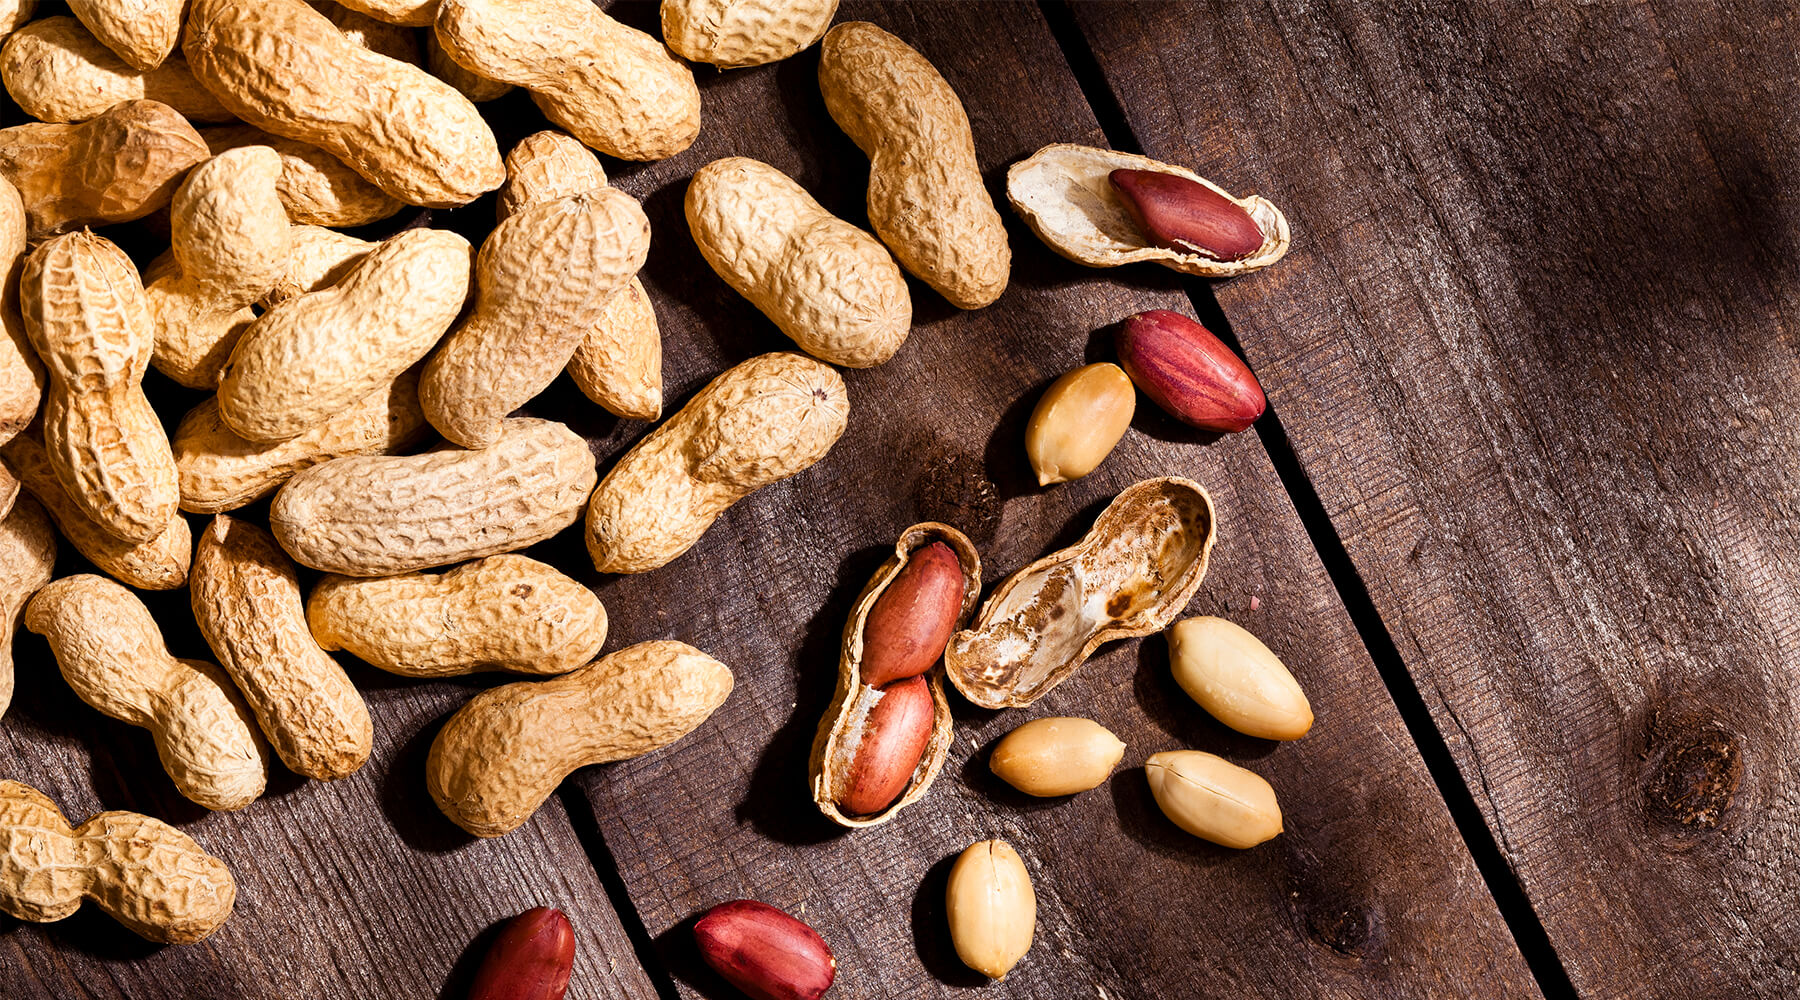 Two-Thirds of Pediatricians Not Following Current Guidelines on Peanut Allergy Prevention